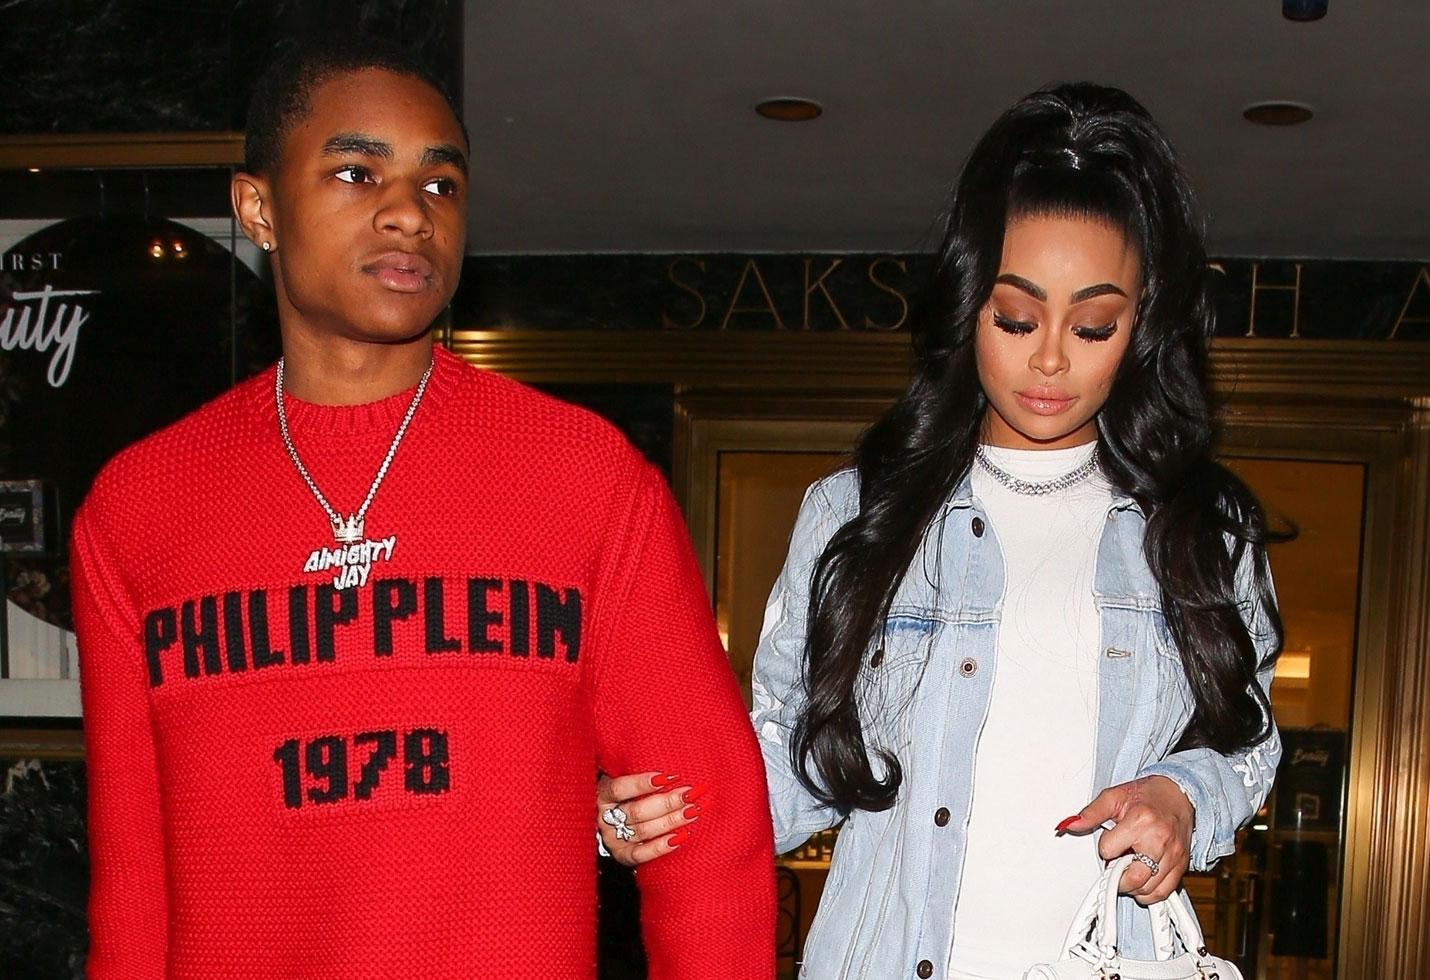 Blac Chyna And YBN Almighty Jay Reunite At The Club - See The Video